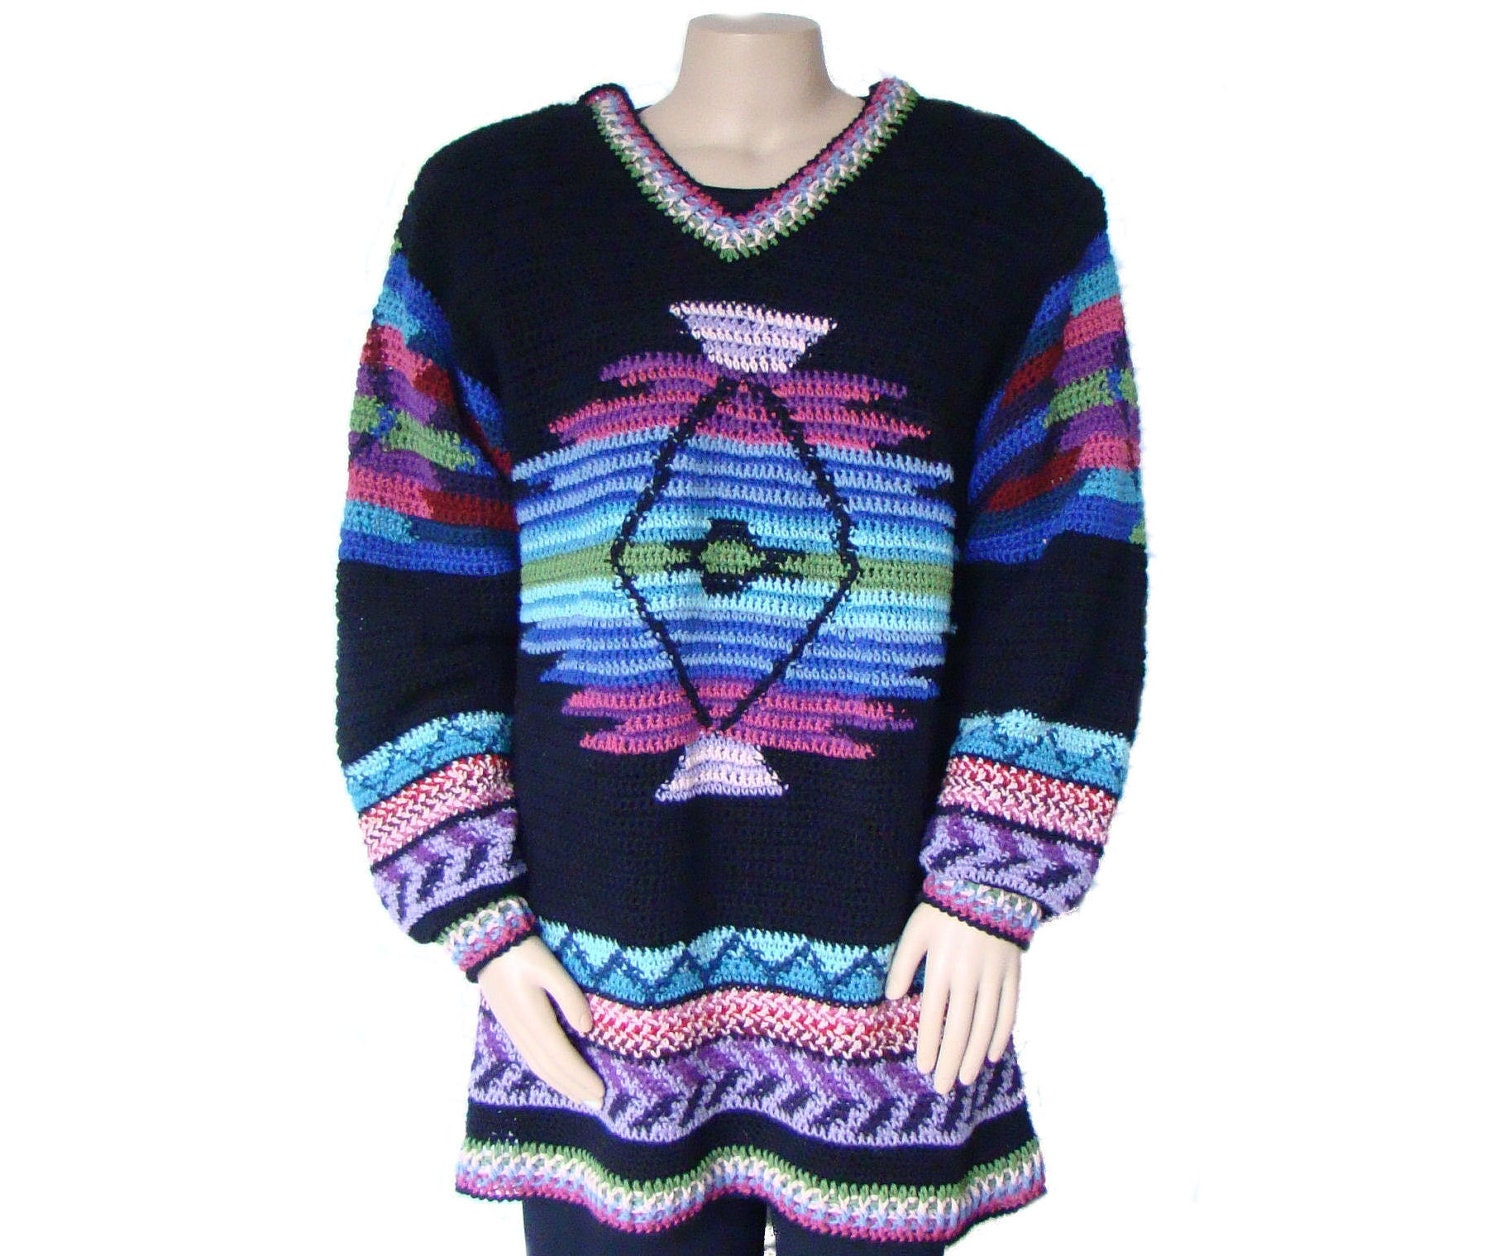 Size 1X Sweater from MirabilisFashions